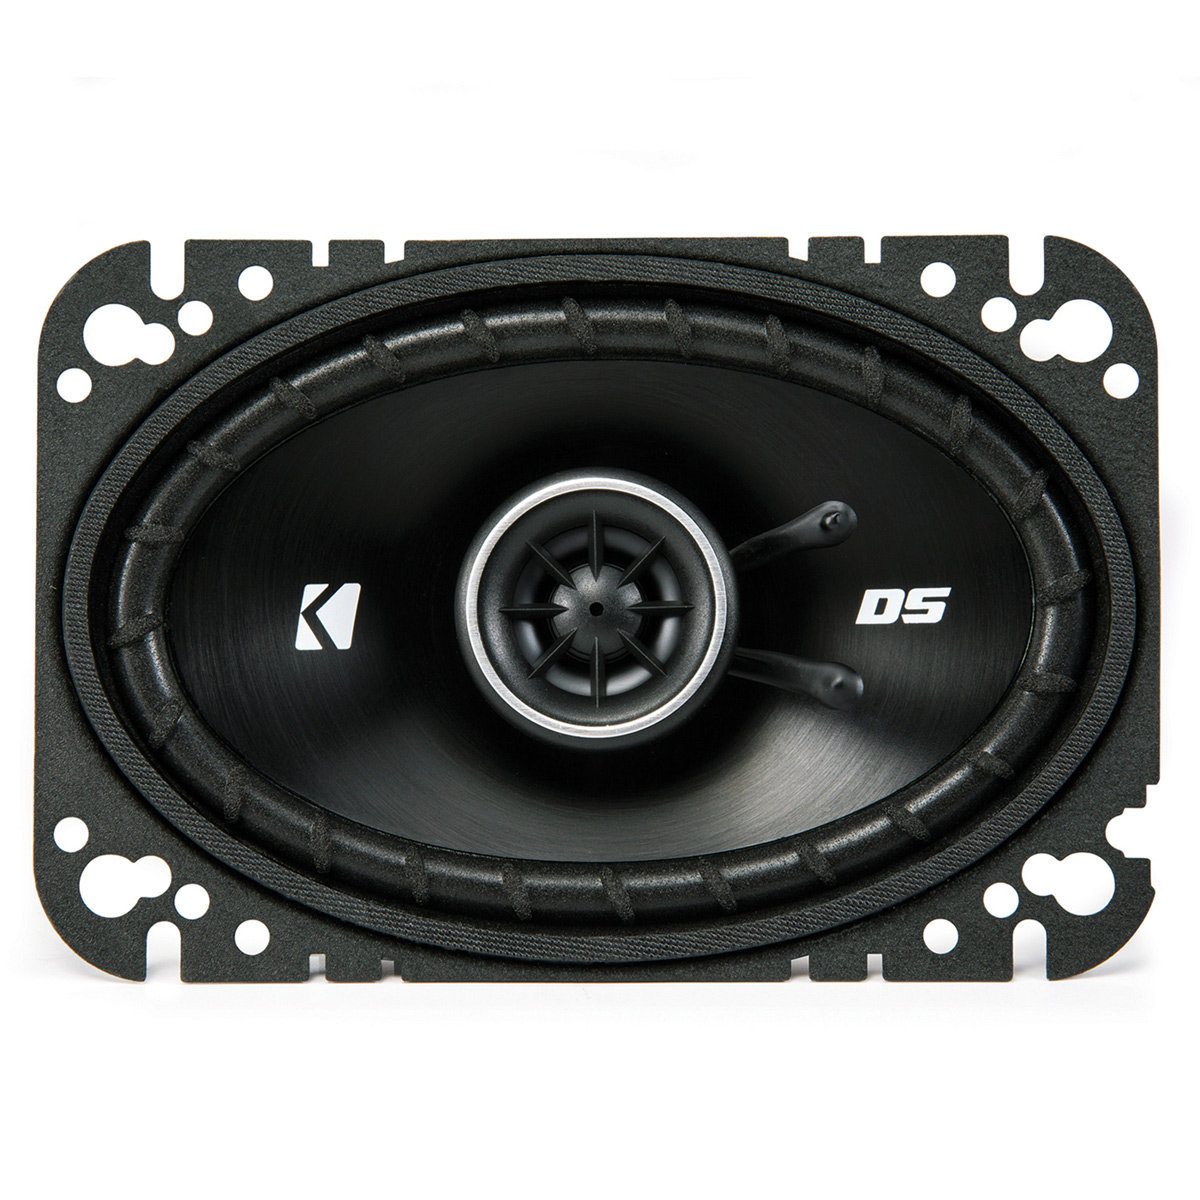 Kicker DSC460 DS Series 4x6 4-Ohm Coaxial Speaker